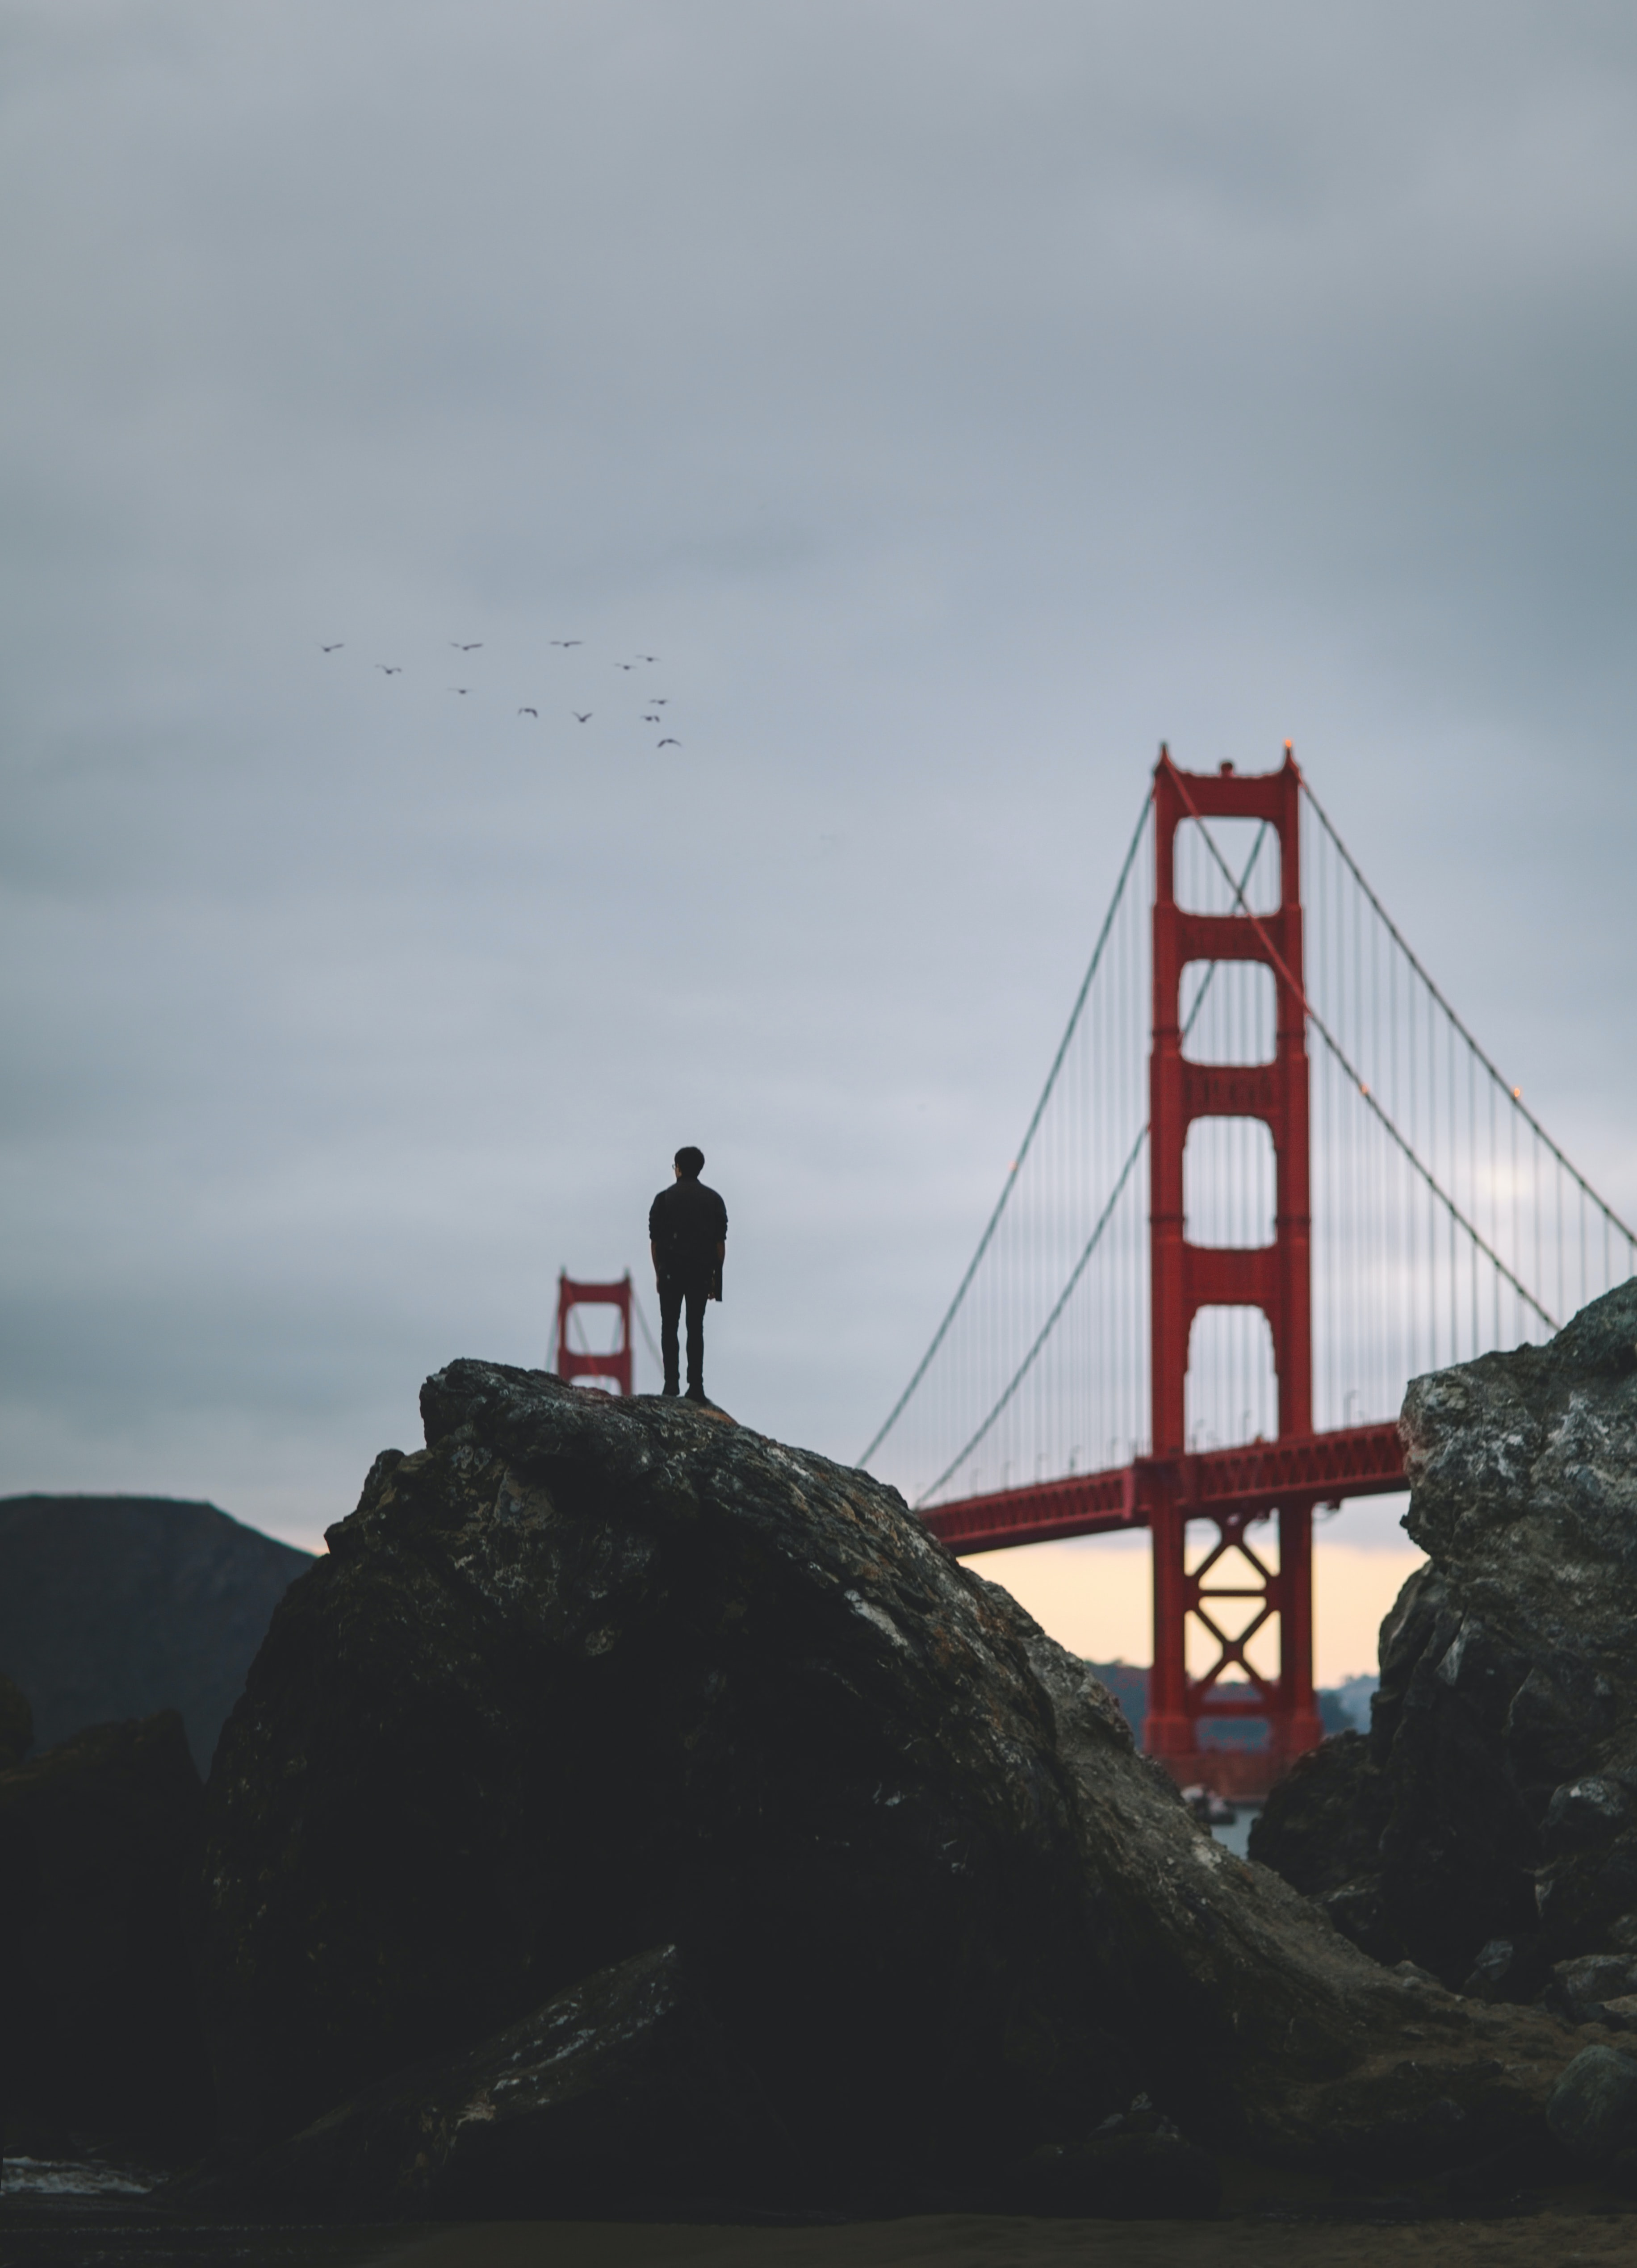 A lone person standing on a boulder, looking towards the Golden Gate Bridge.